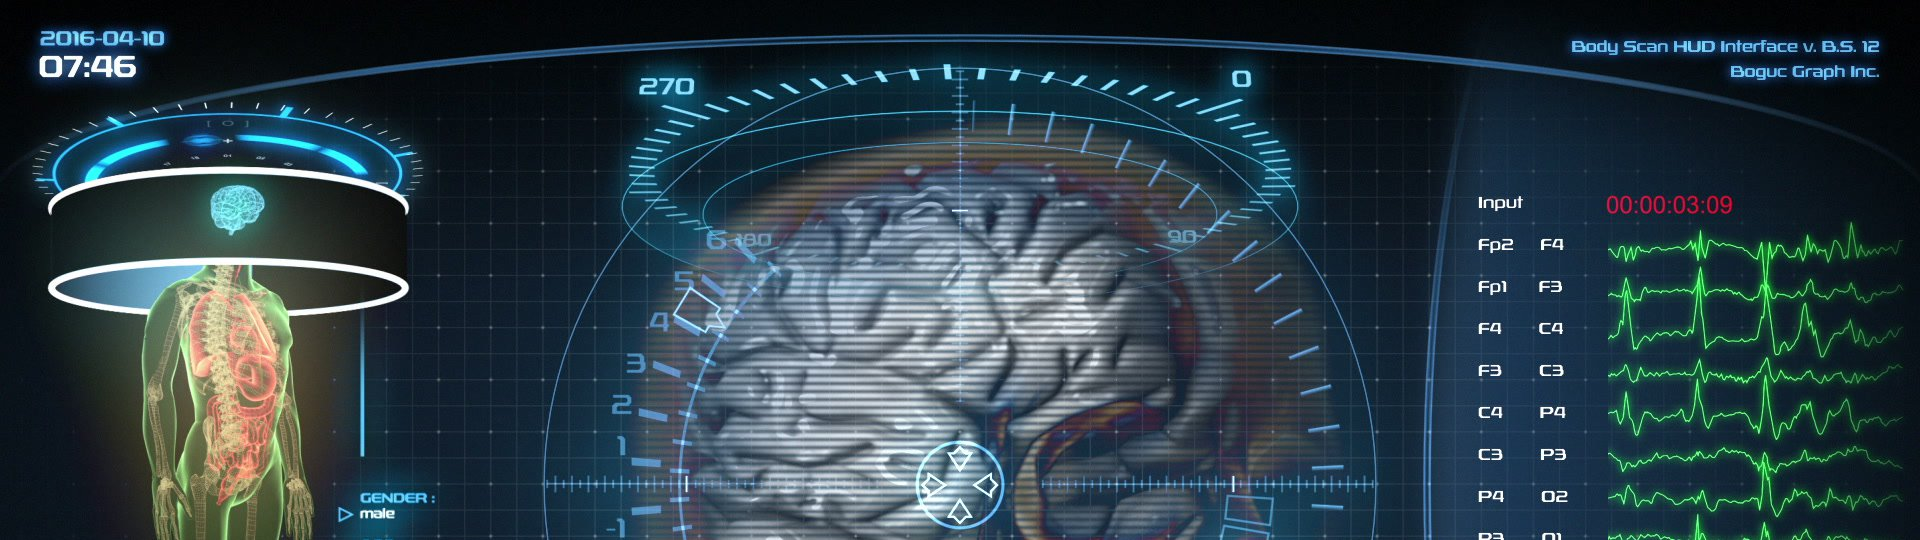 Futuristic brain scan | Holographic medical application interface - ID:18483